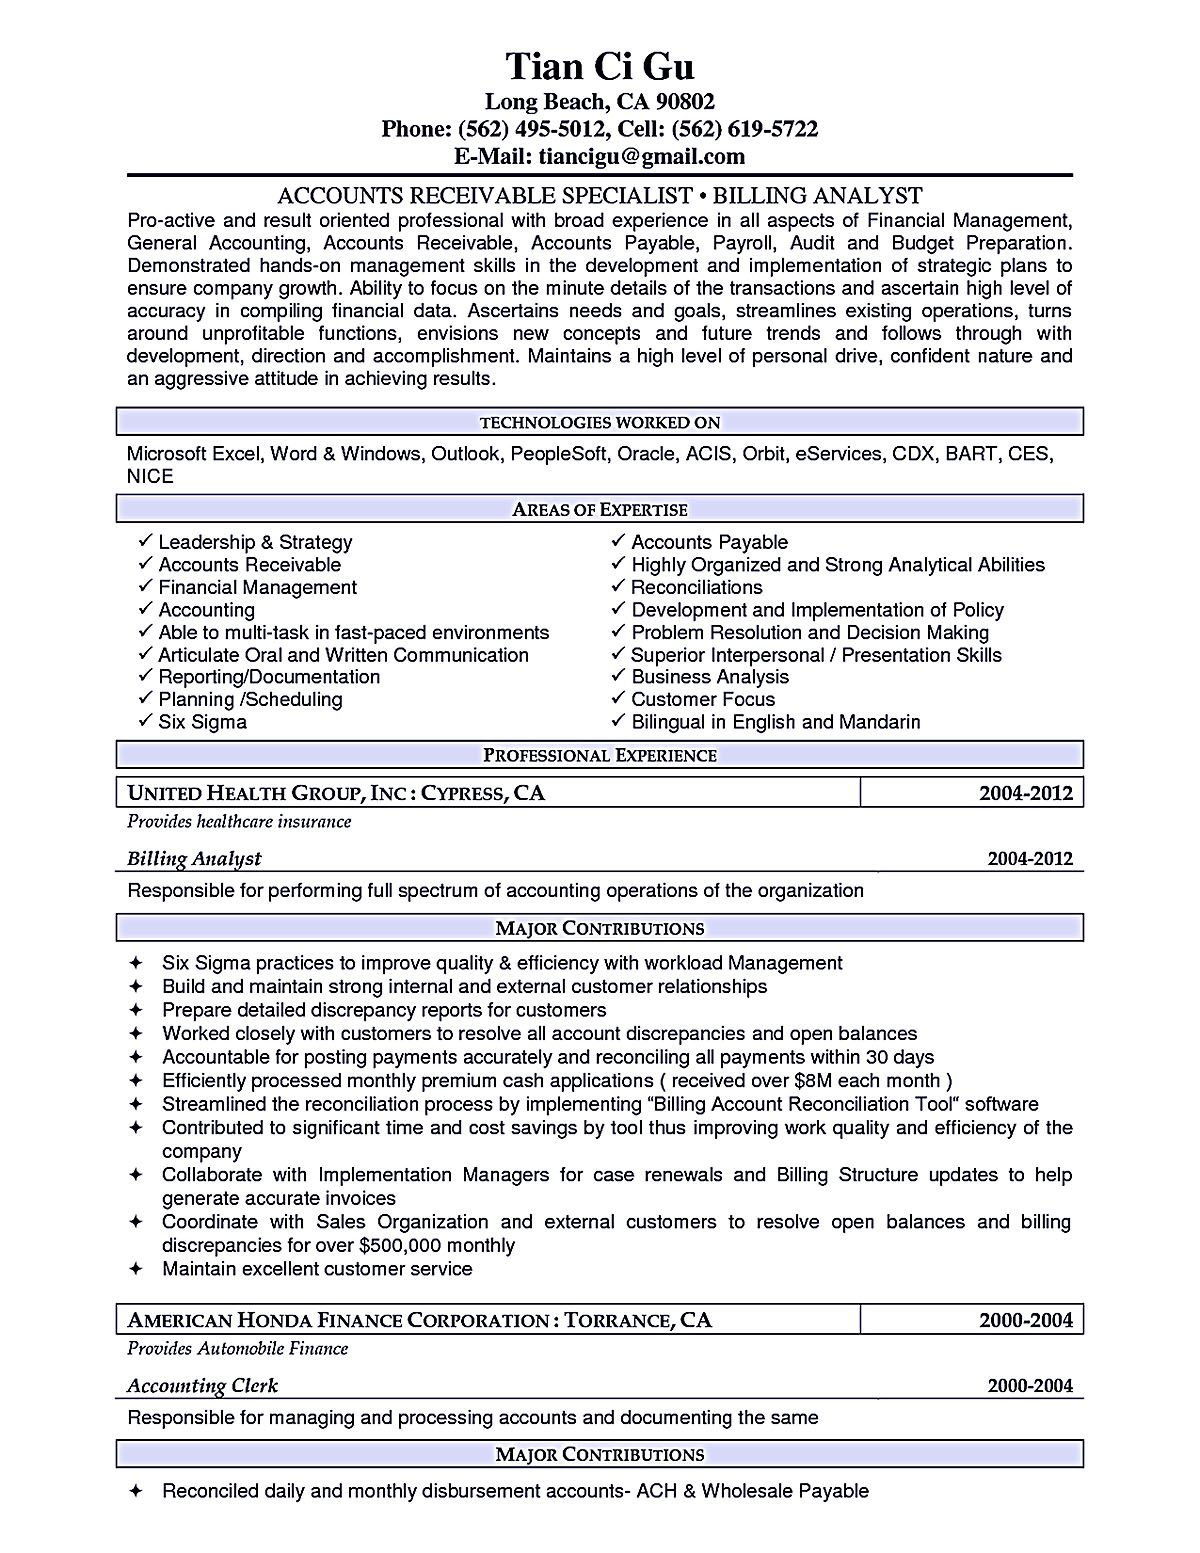 Professional Summary Resume Unique Account Receivable Resume Shows Both Technical And Interpersonal Design Decoration